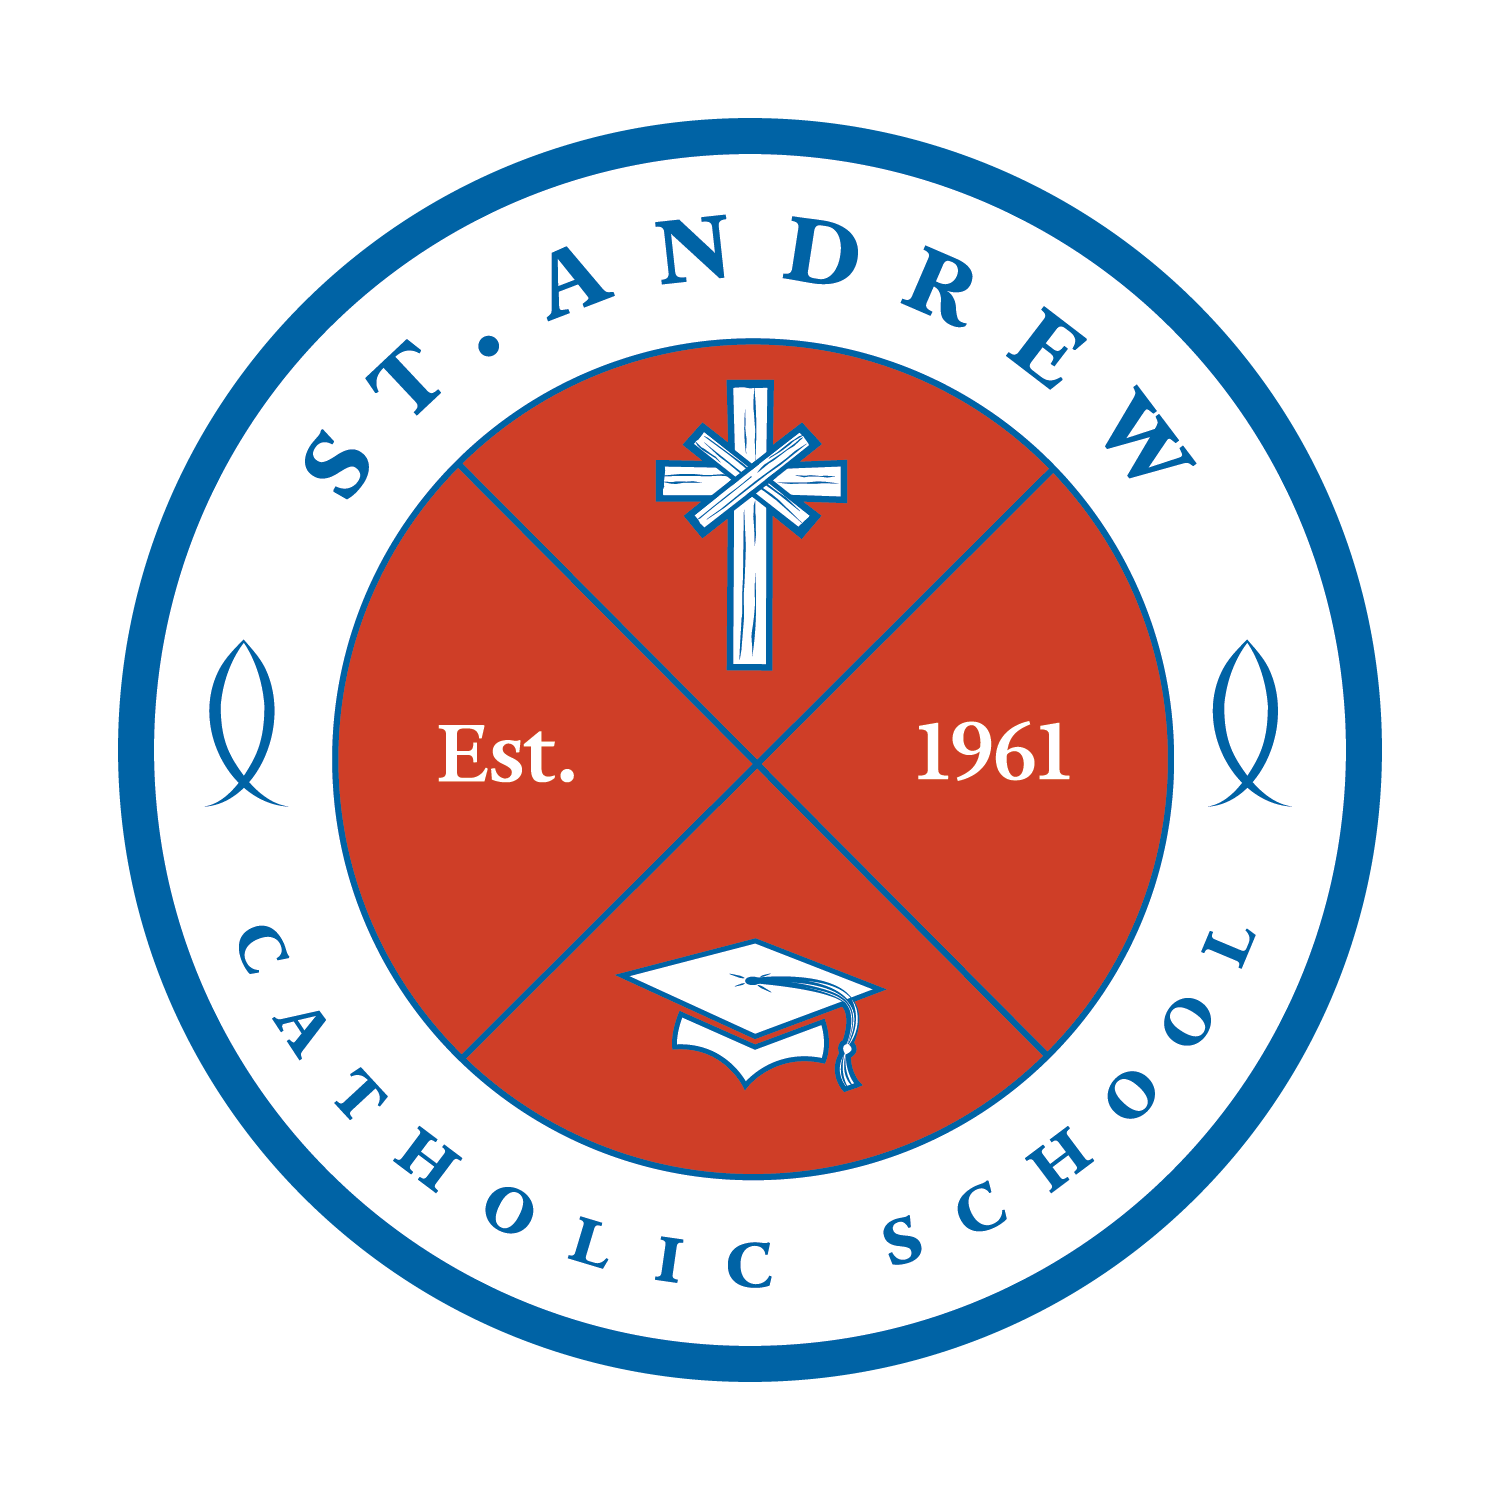 St Andrew Catholic School in Orlando